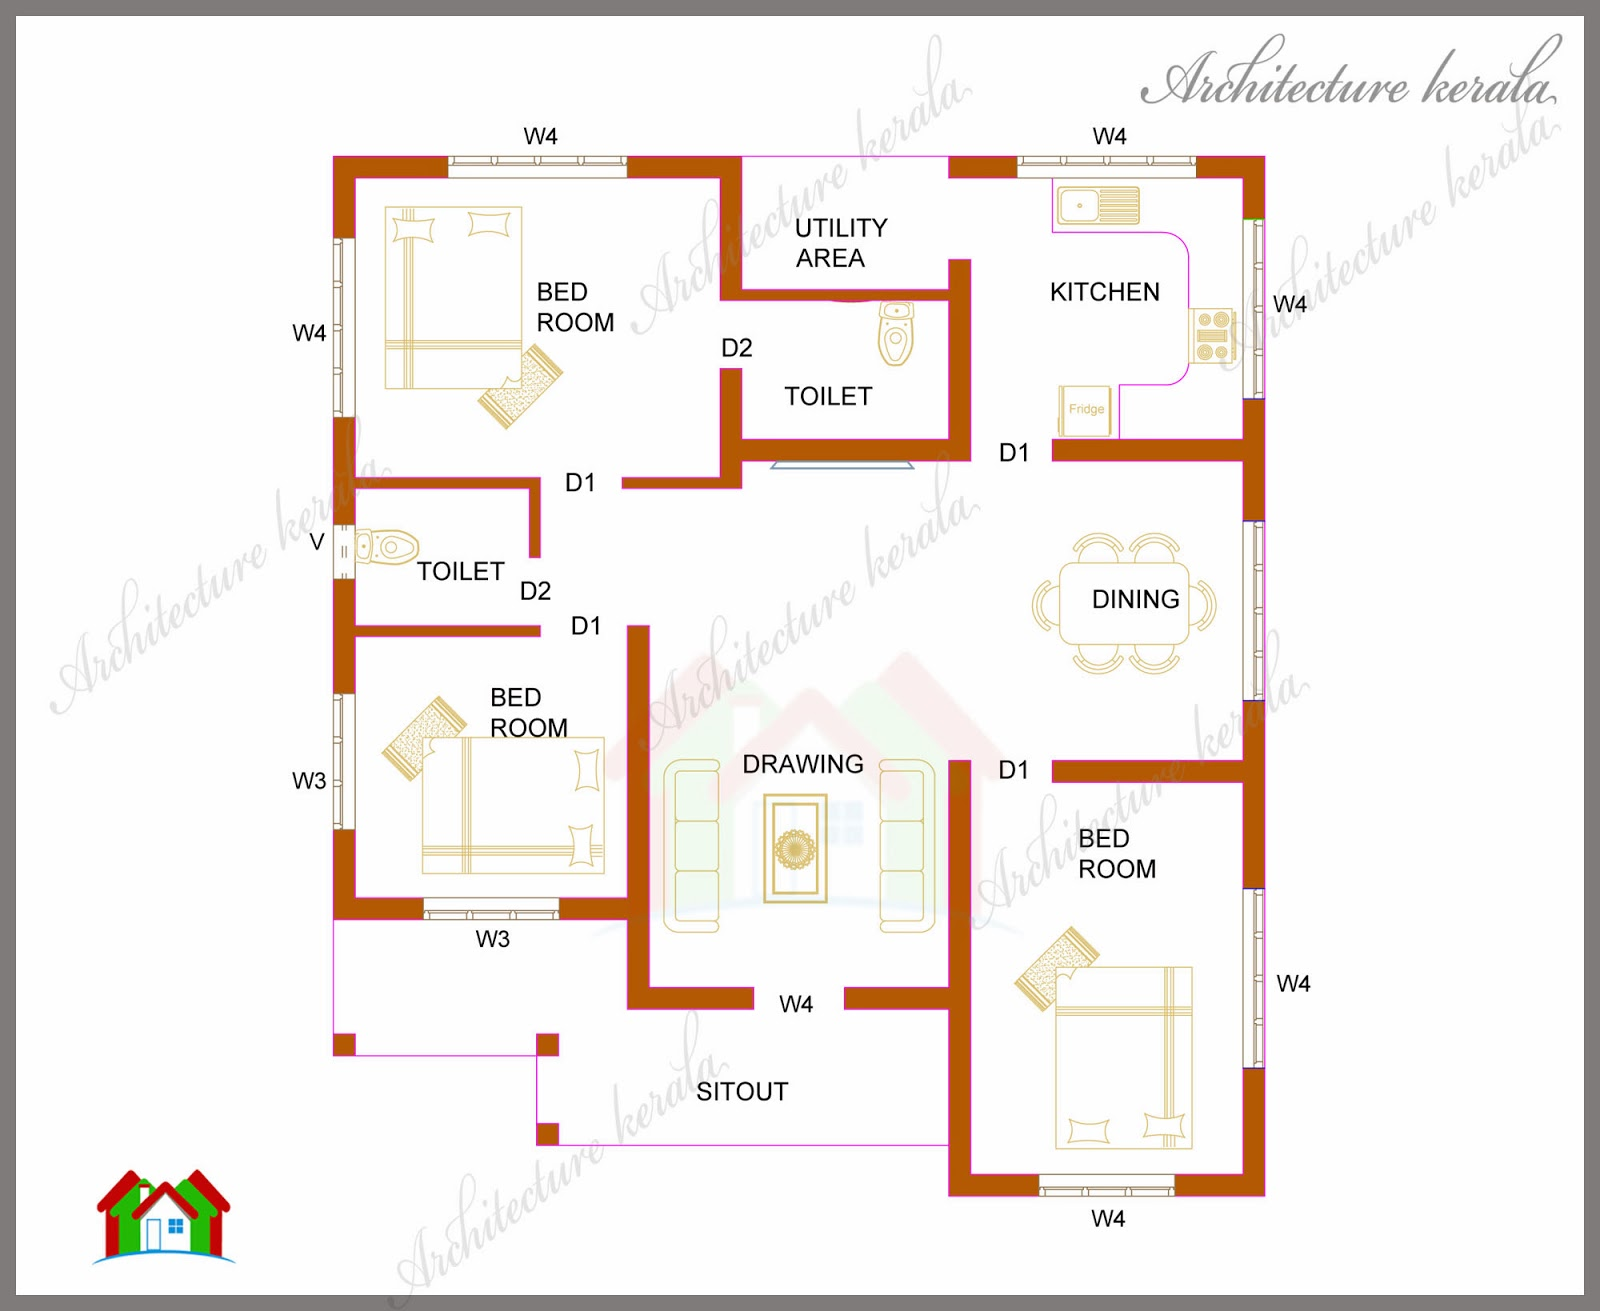 1320 Sqft Kerala style 3 Bedroom House Plan from Smart home GF ...